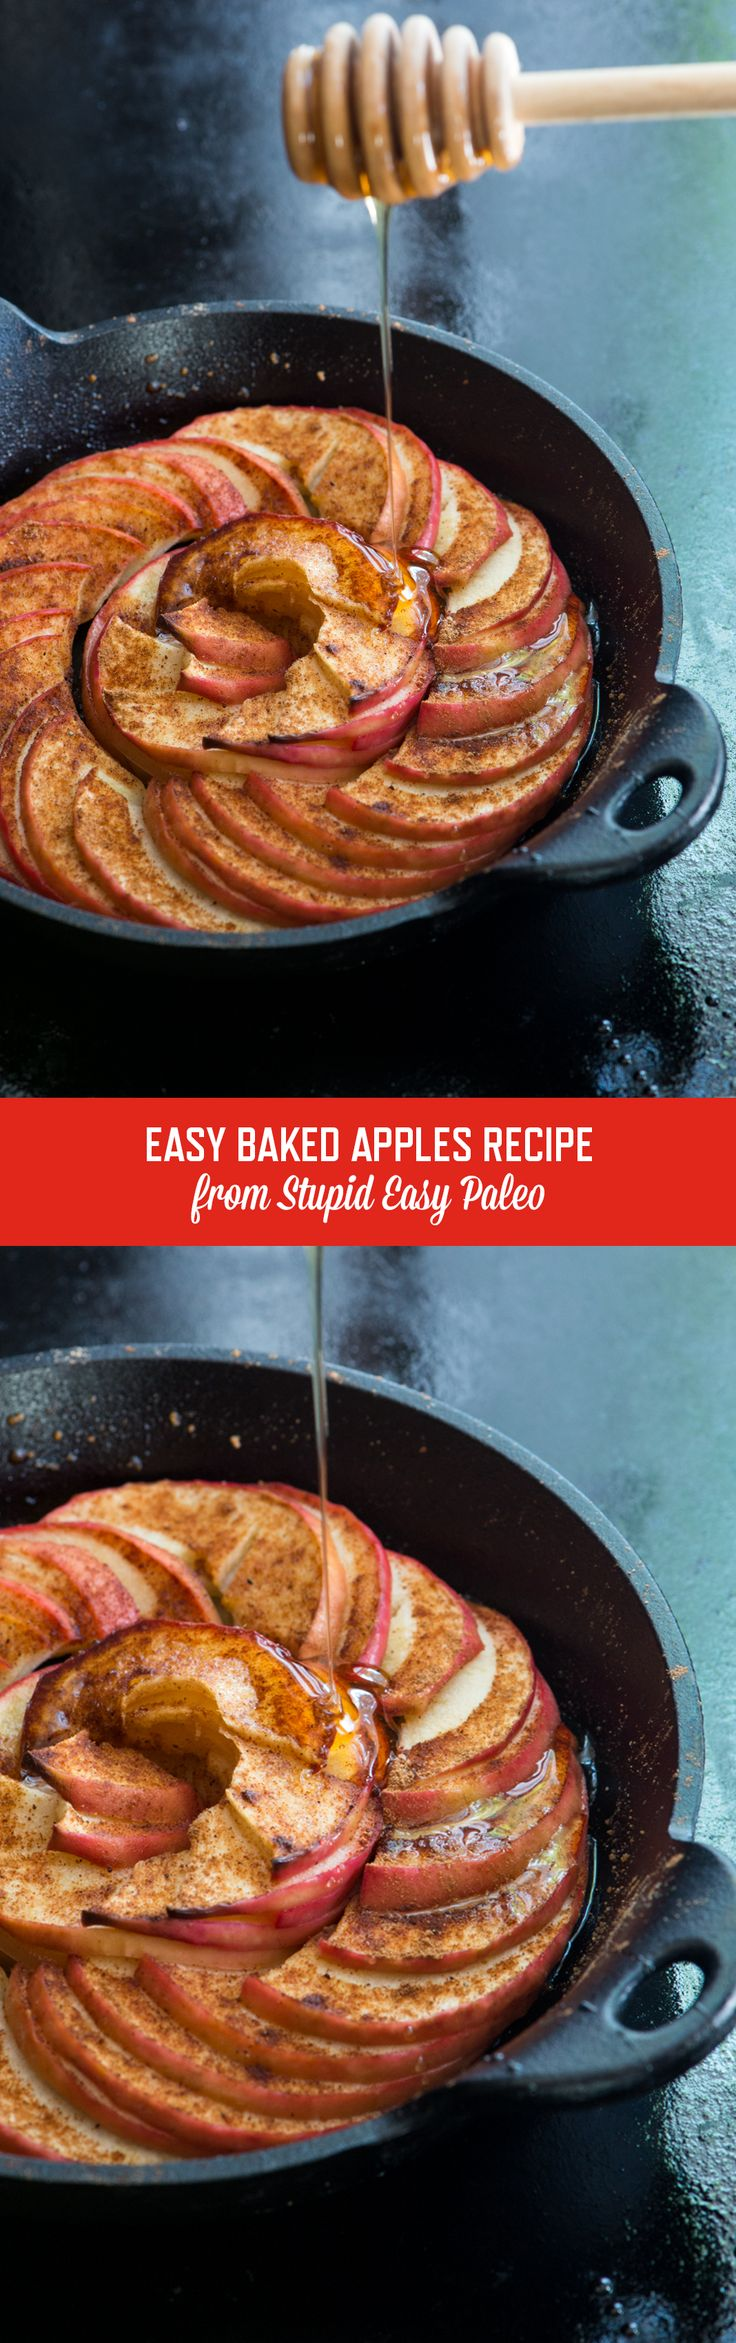 Easy Baked Apples Recipe | StupidEasyPaleo.com